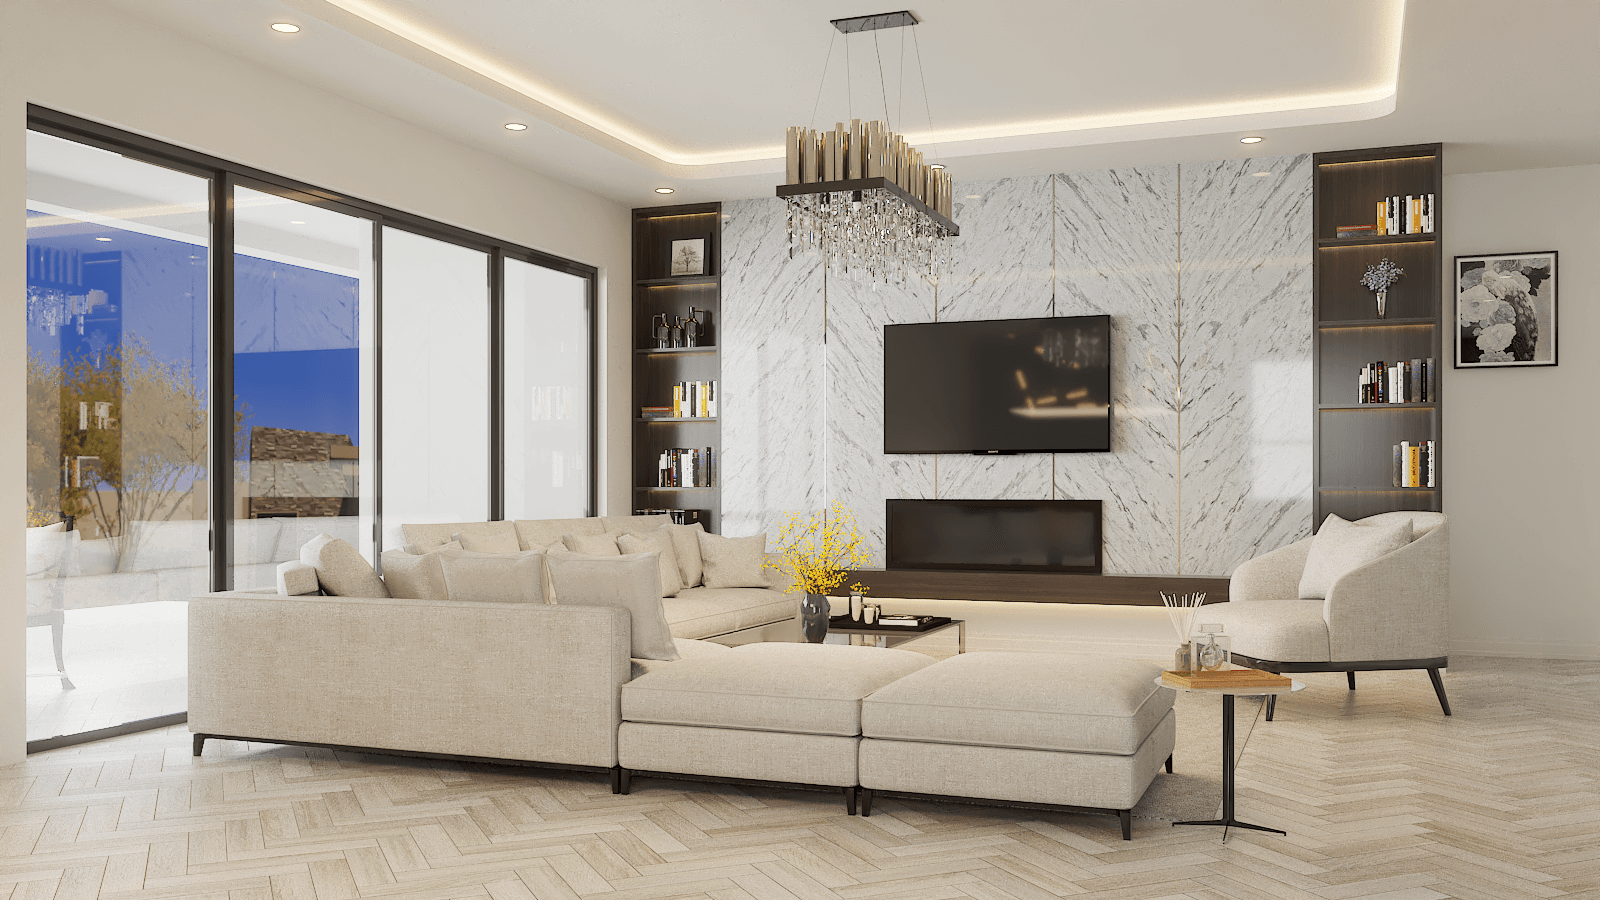 Living Area featured in the Manzanita By Fairfield Homes in Tucson, AZ